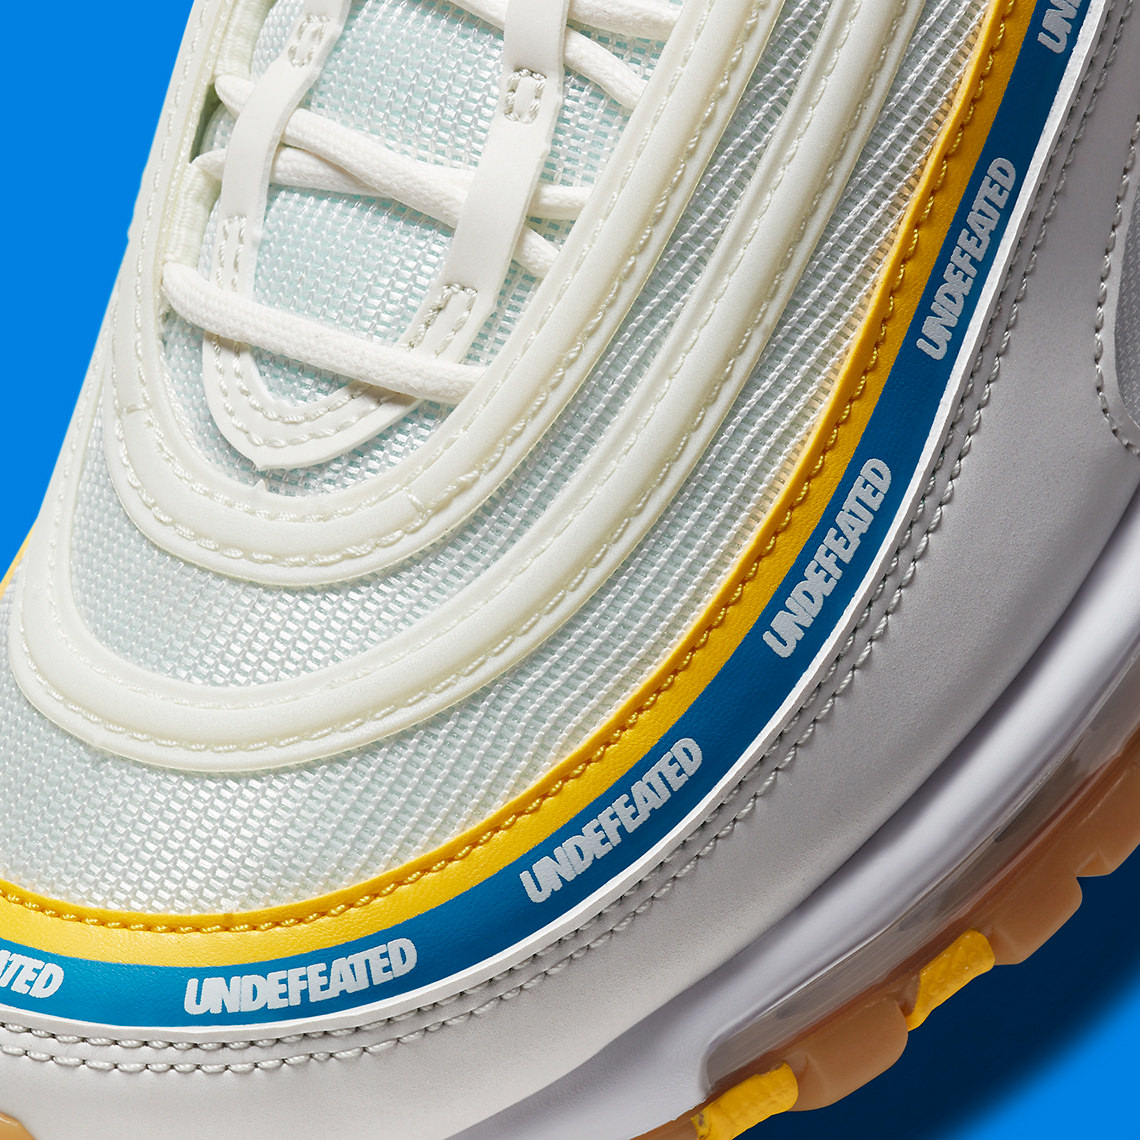 undefeated-nike-air-max-97-ucla-DC4830-100-release-date-8